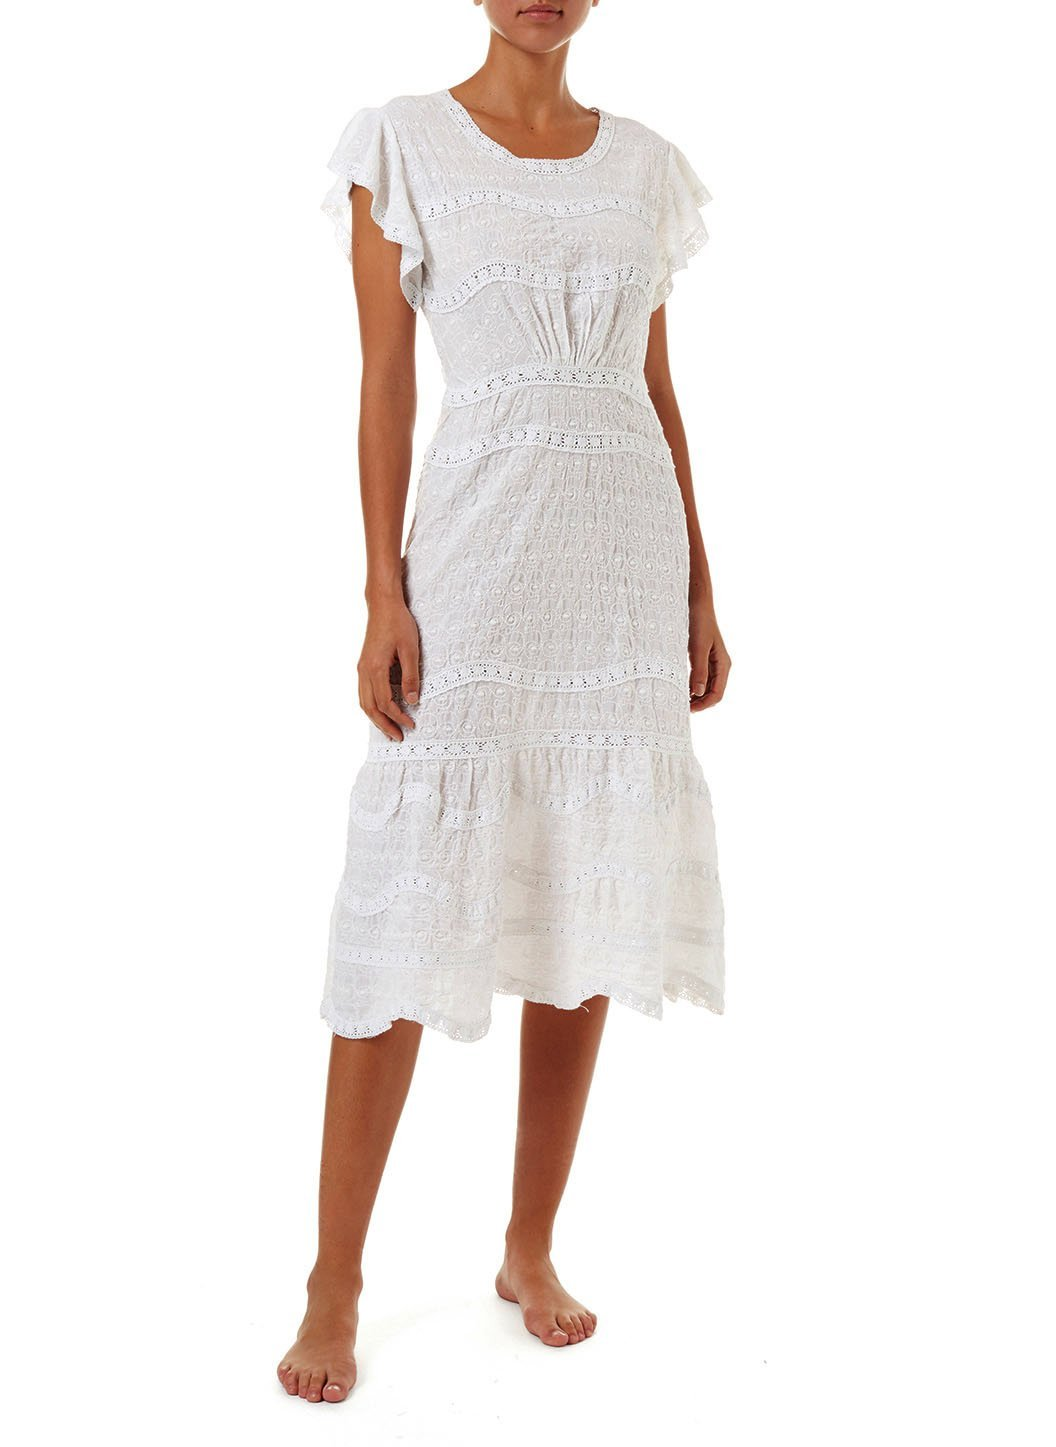 louisa white highneck midi tea dress 2019 F